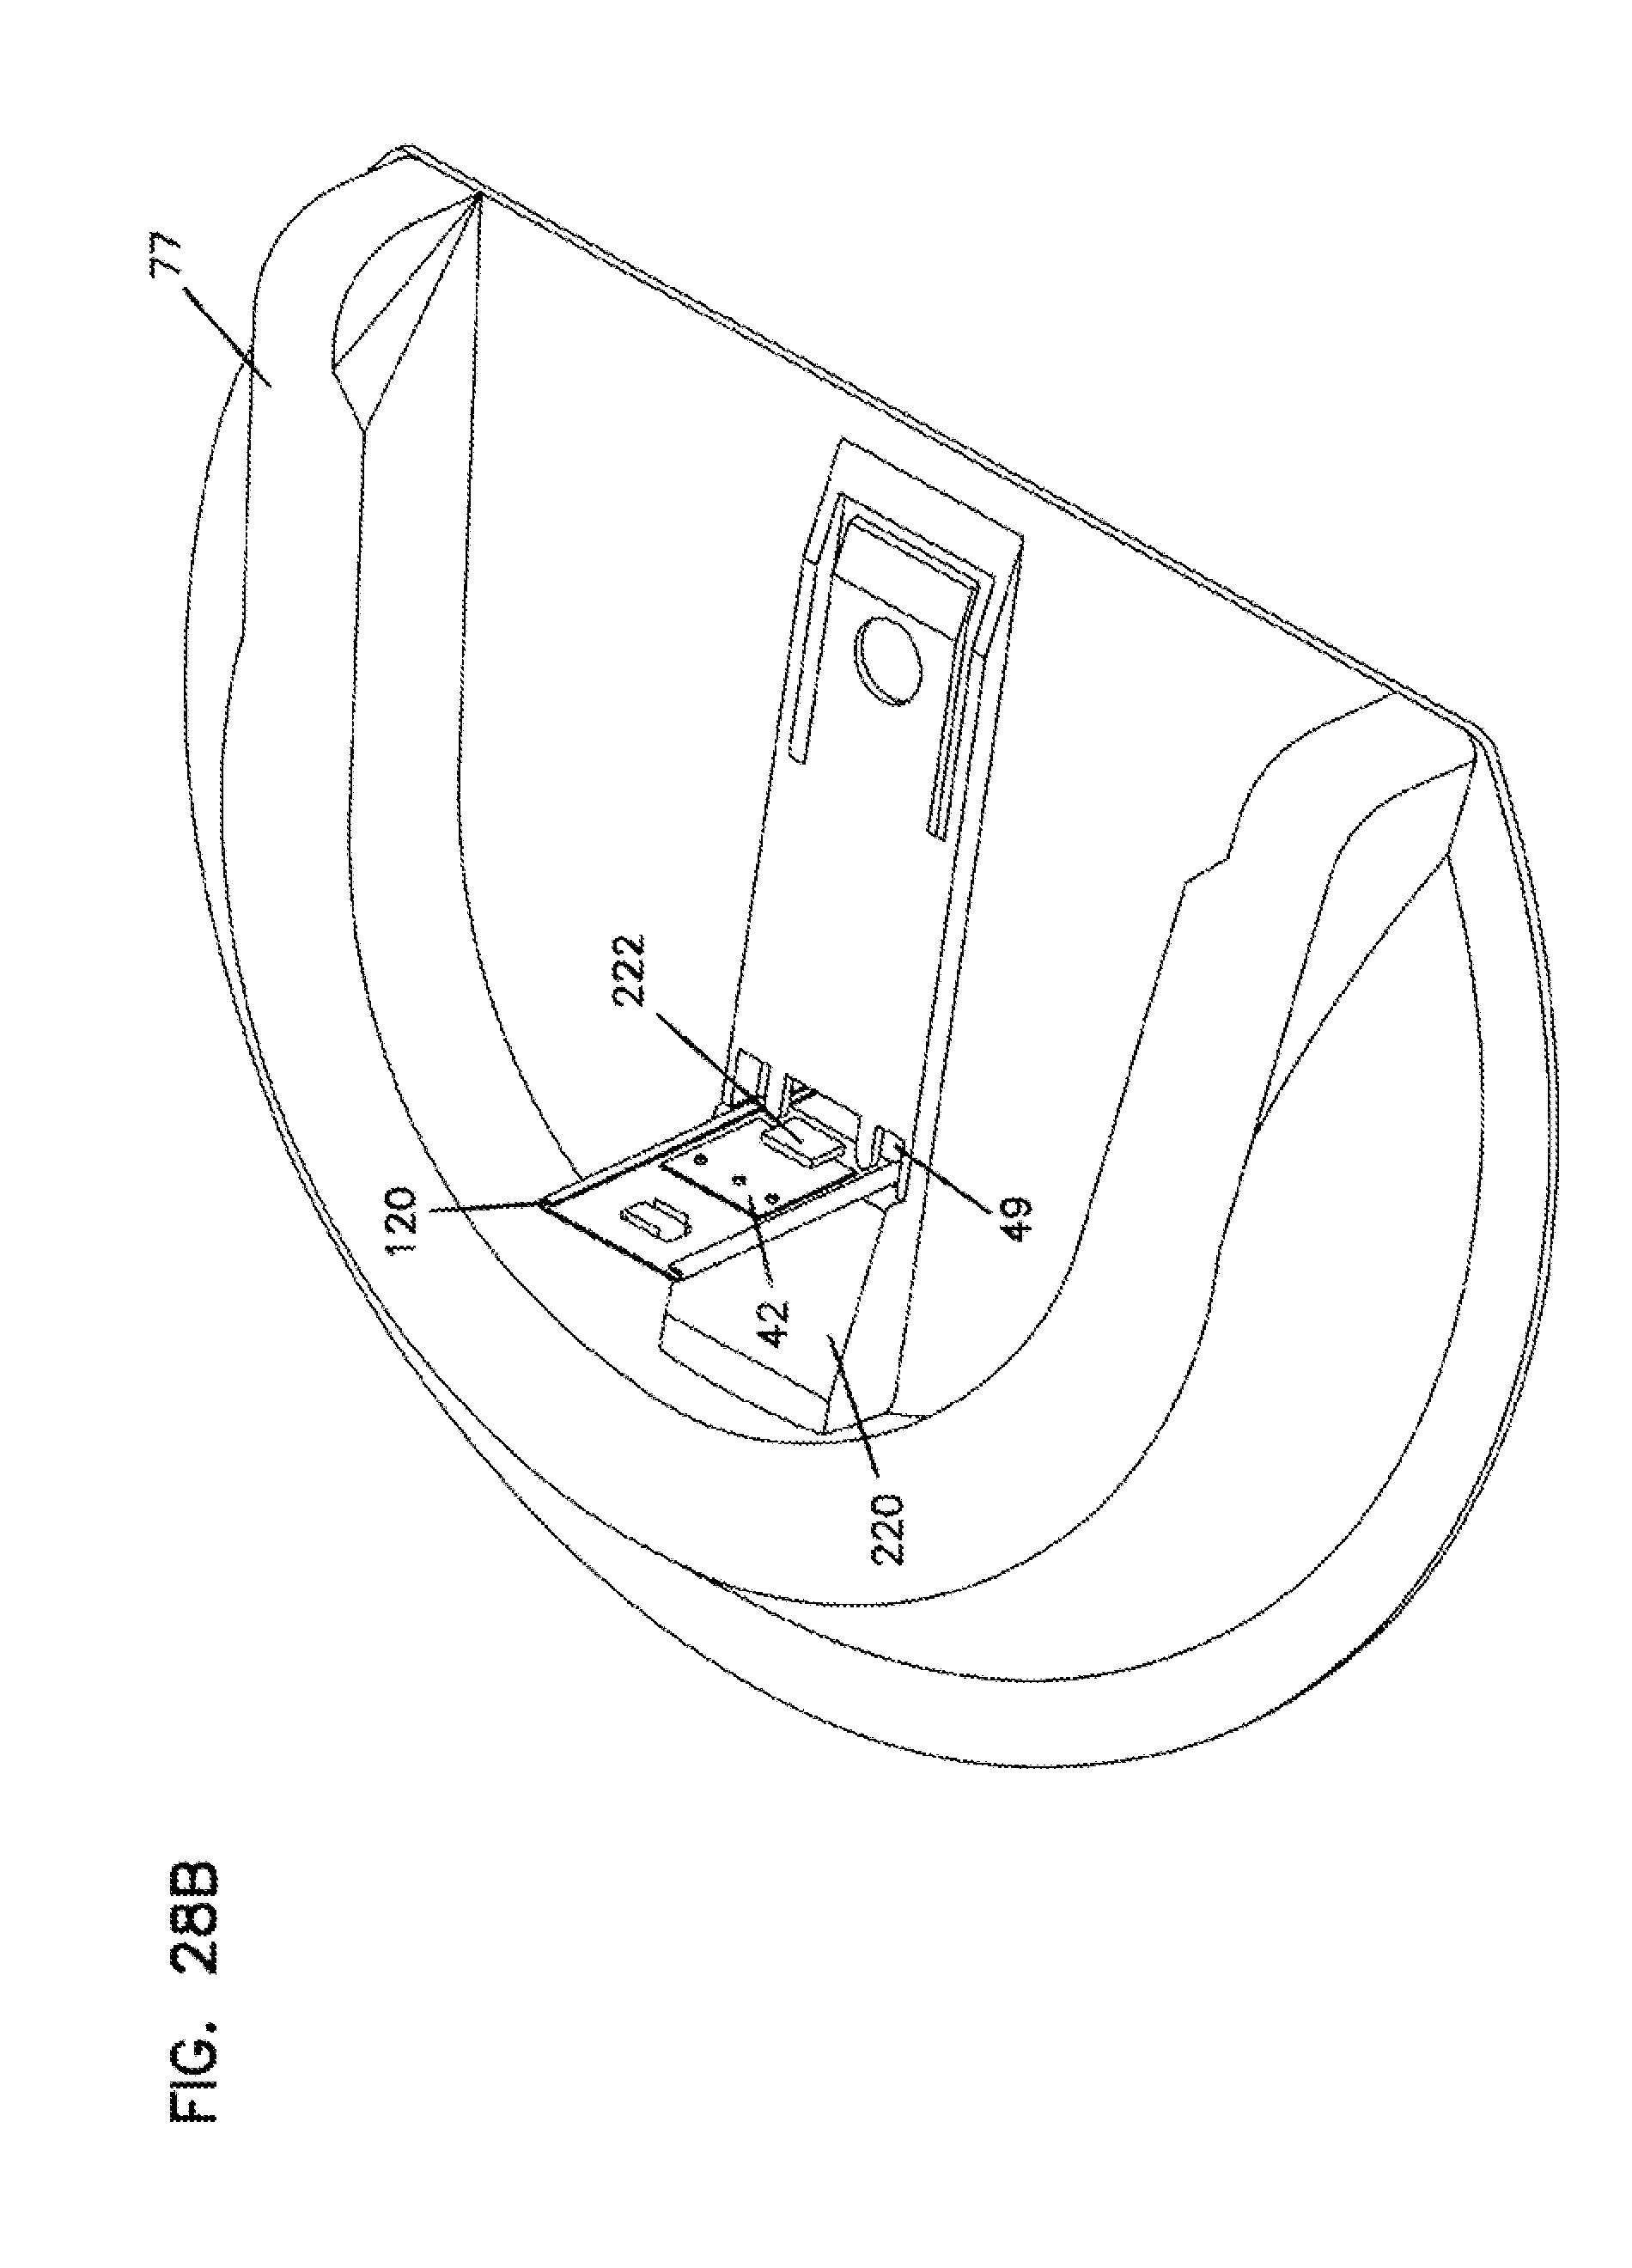 hight resolution of us20070161879a1 analyte monitoring device and methods of use google patents